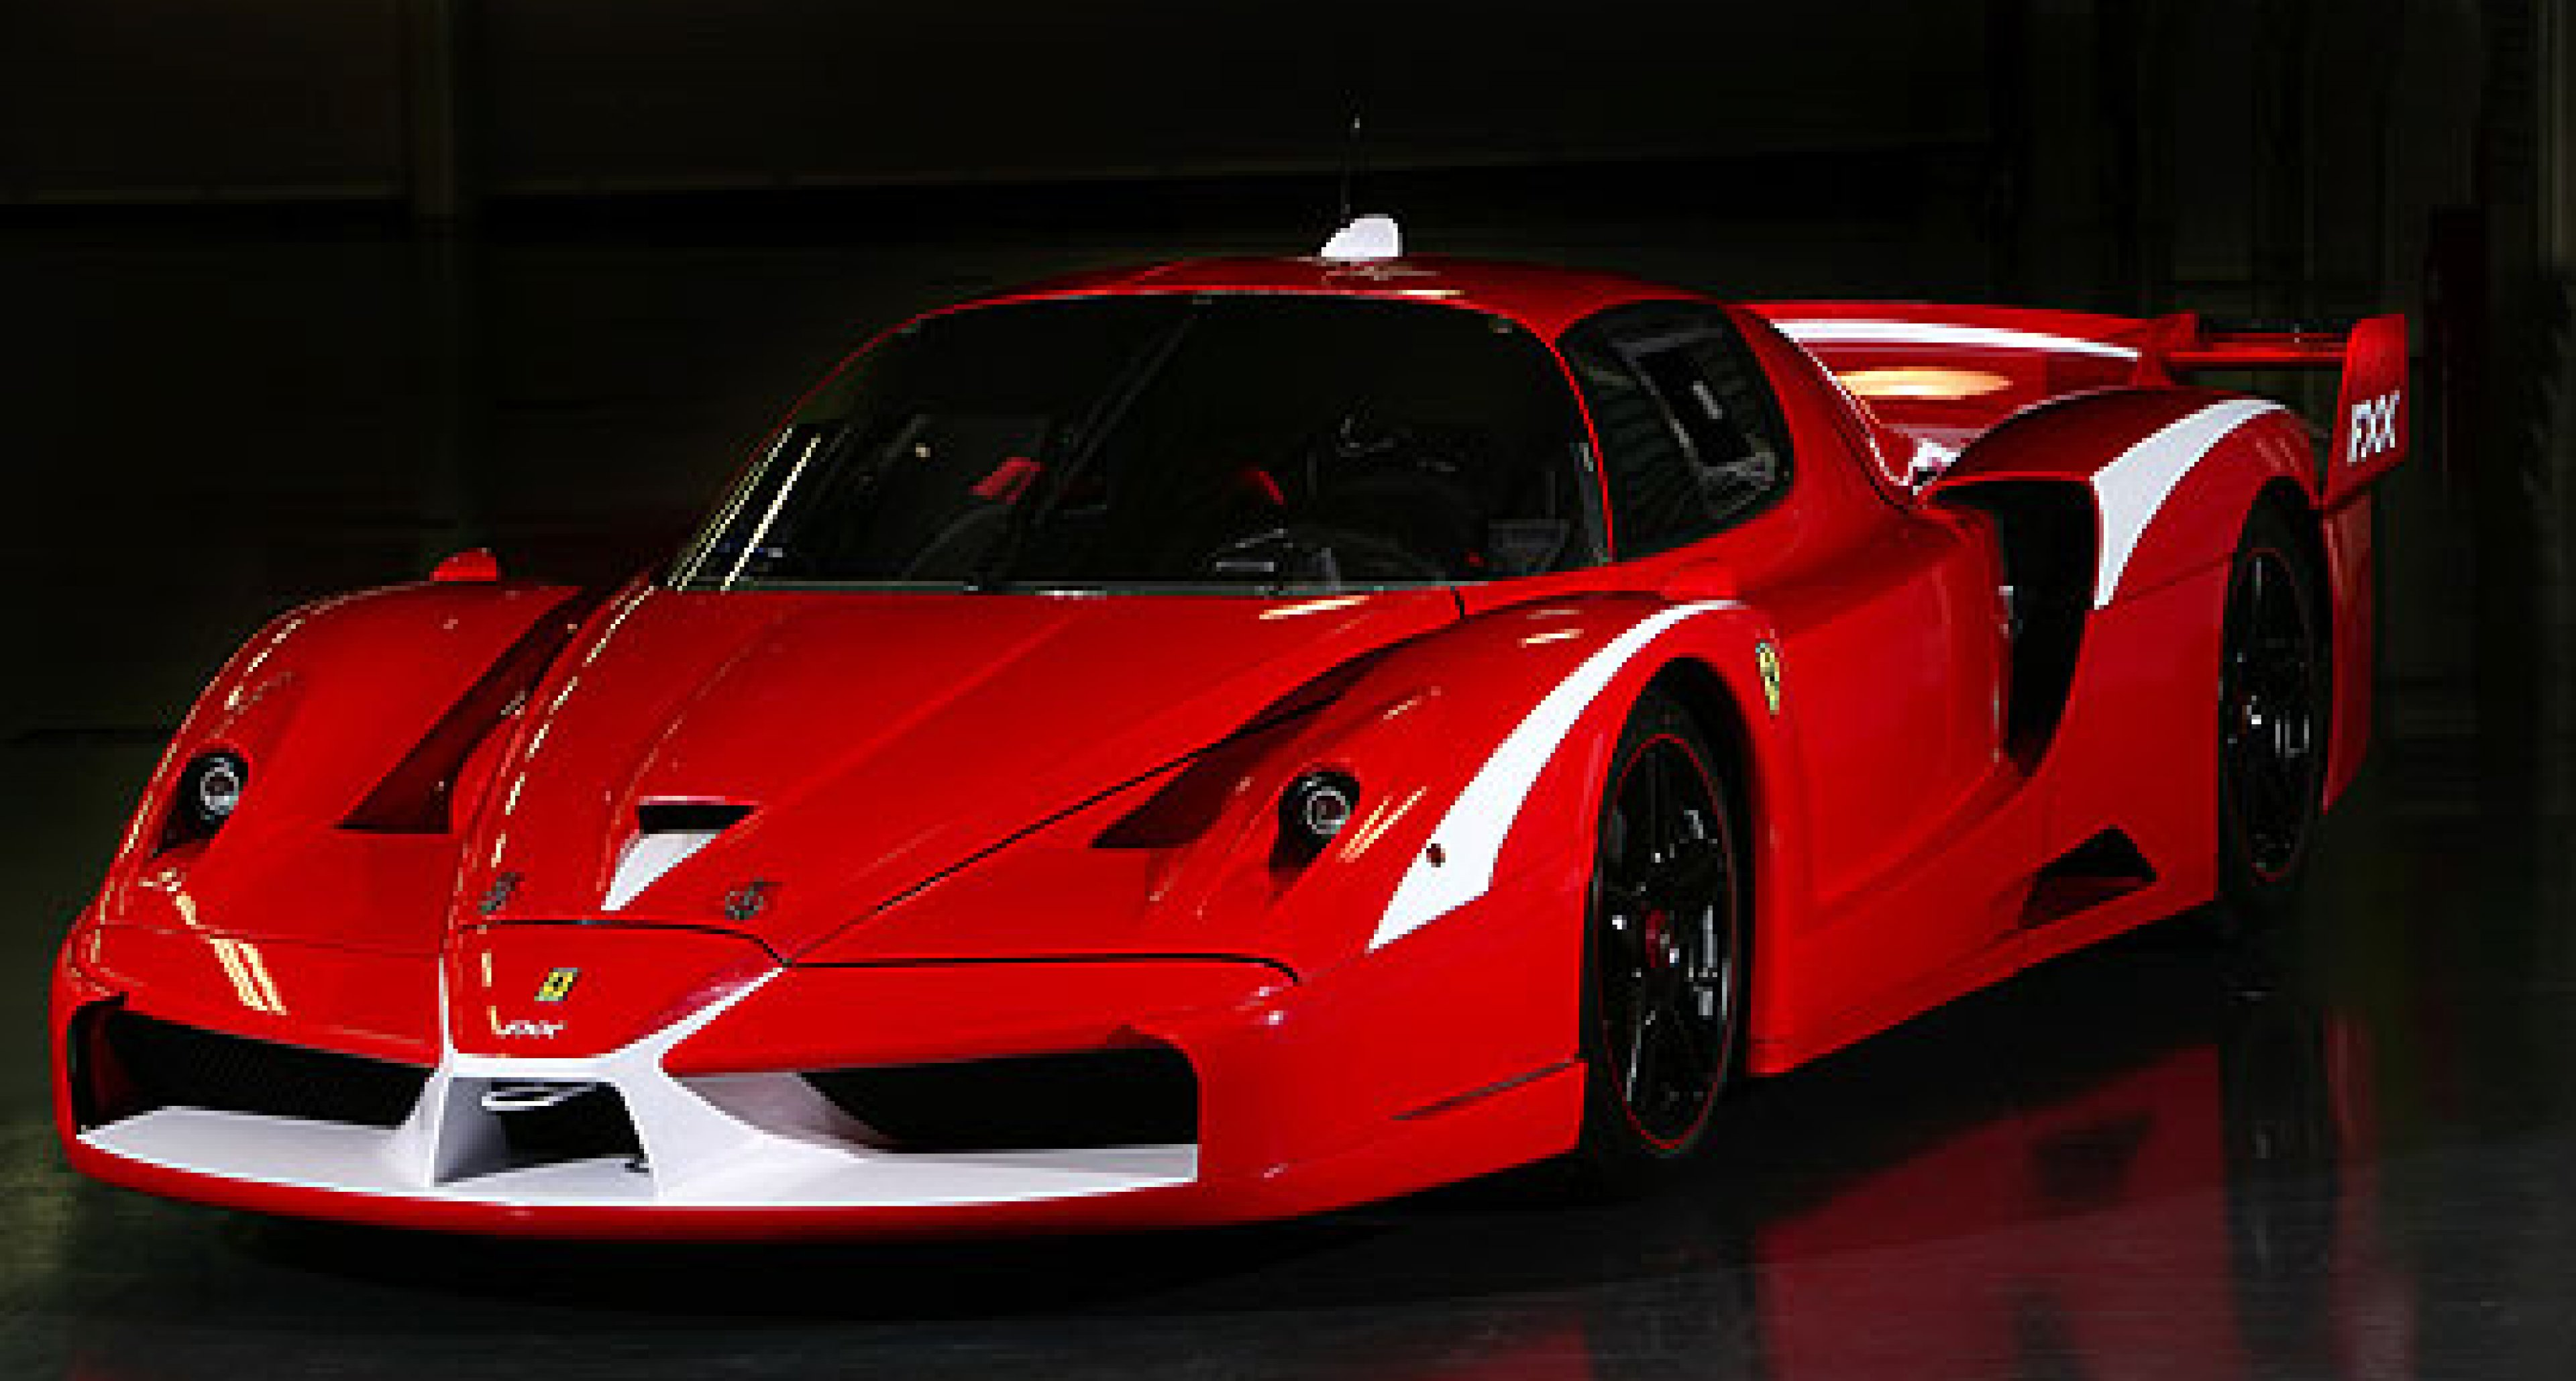 FXX Programme: Two-Year Extension